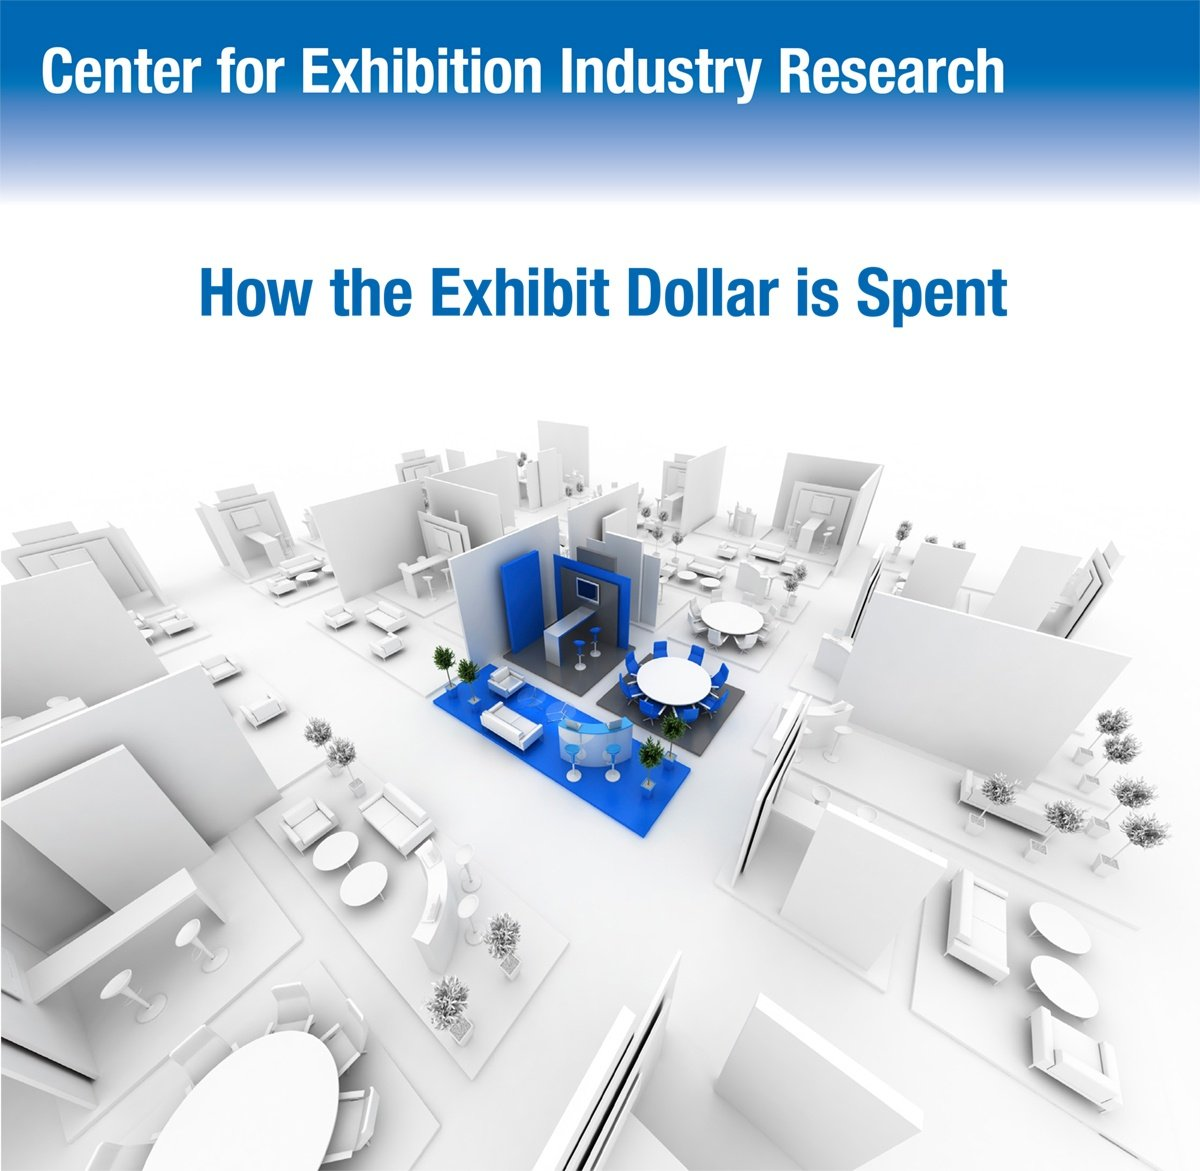 Exhibit Spend